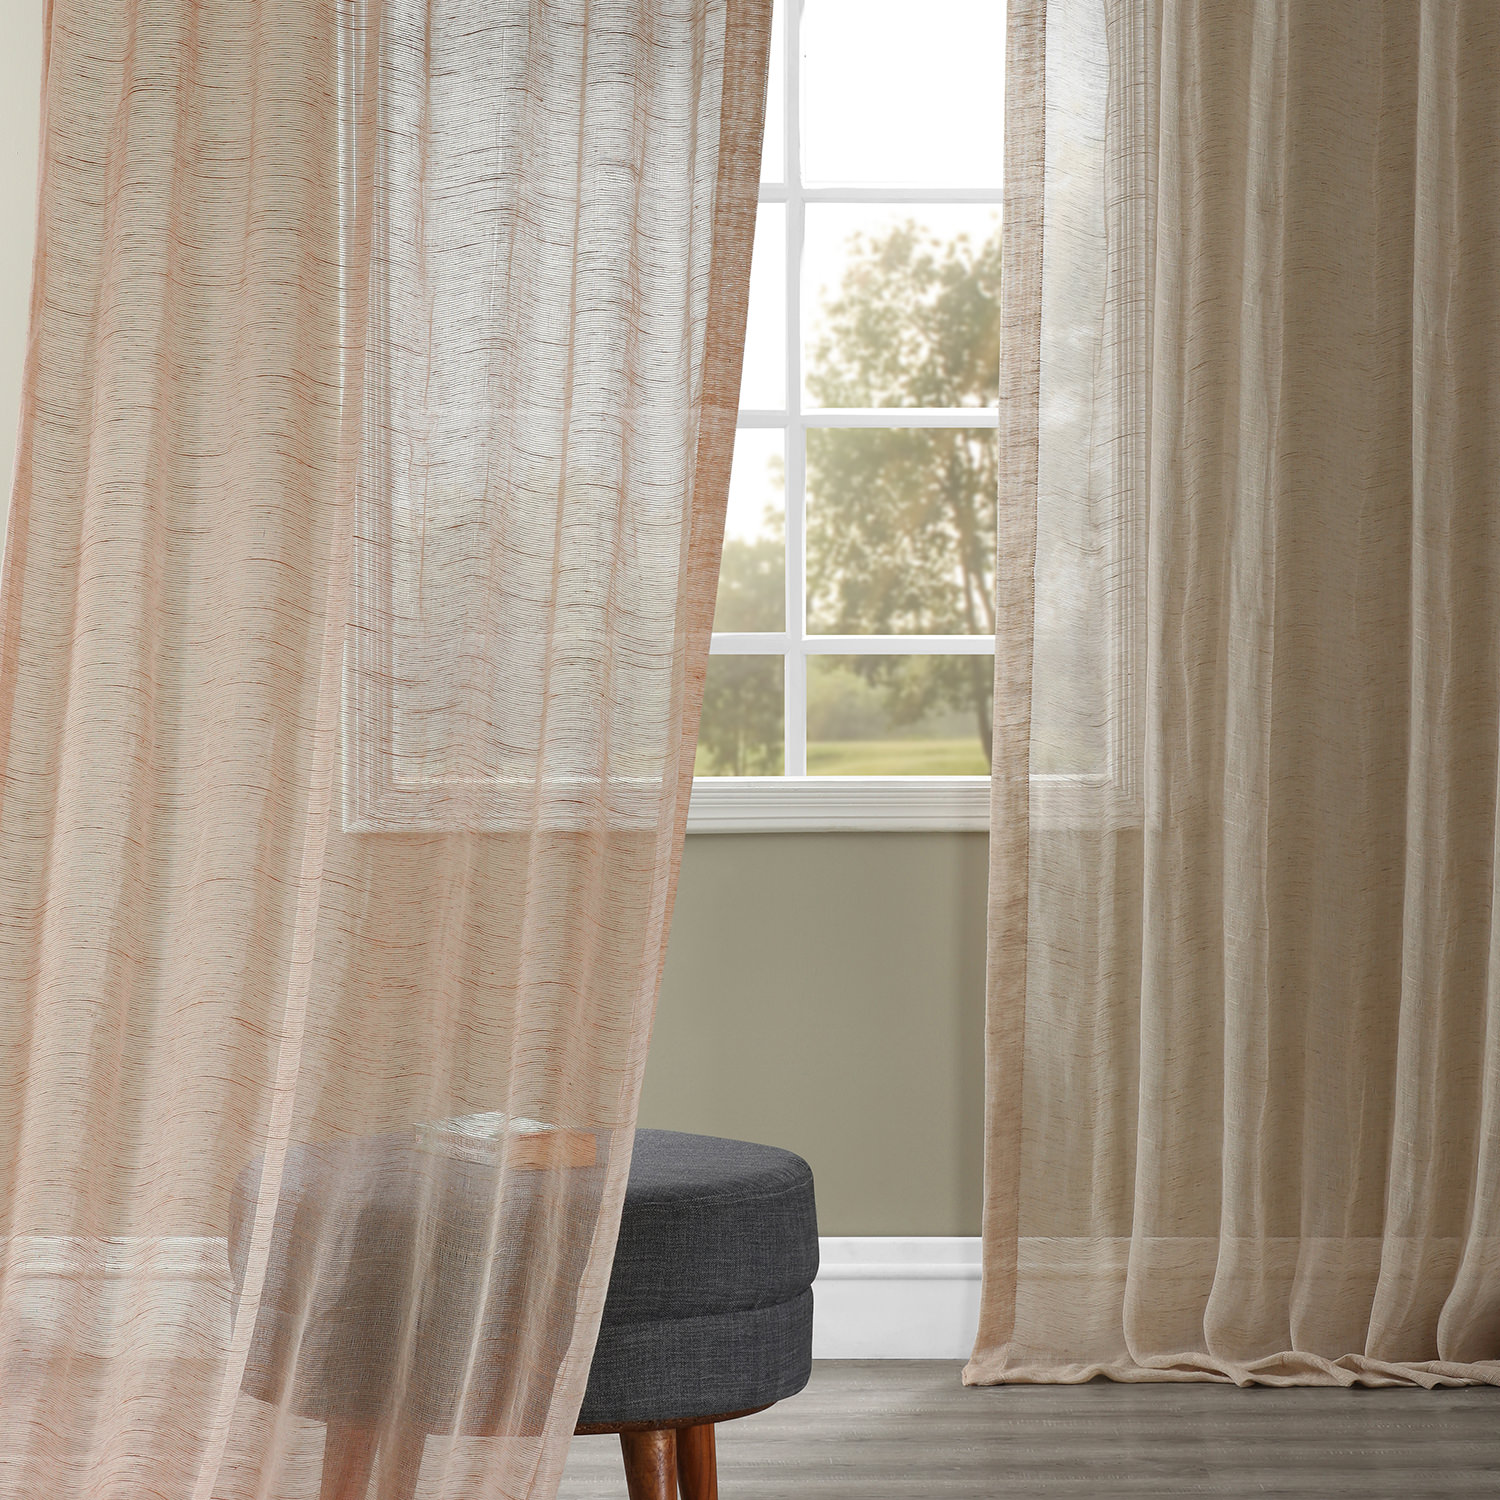 280df4f58 Open Weave Natural Linen Sheer Curtains   Drapes